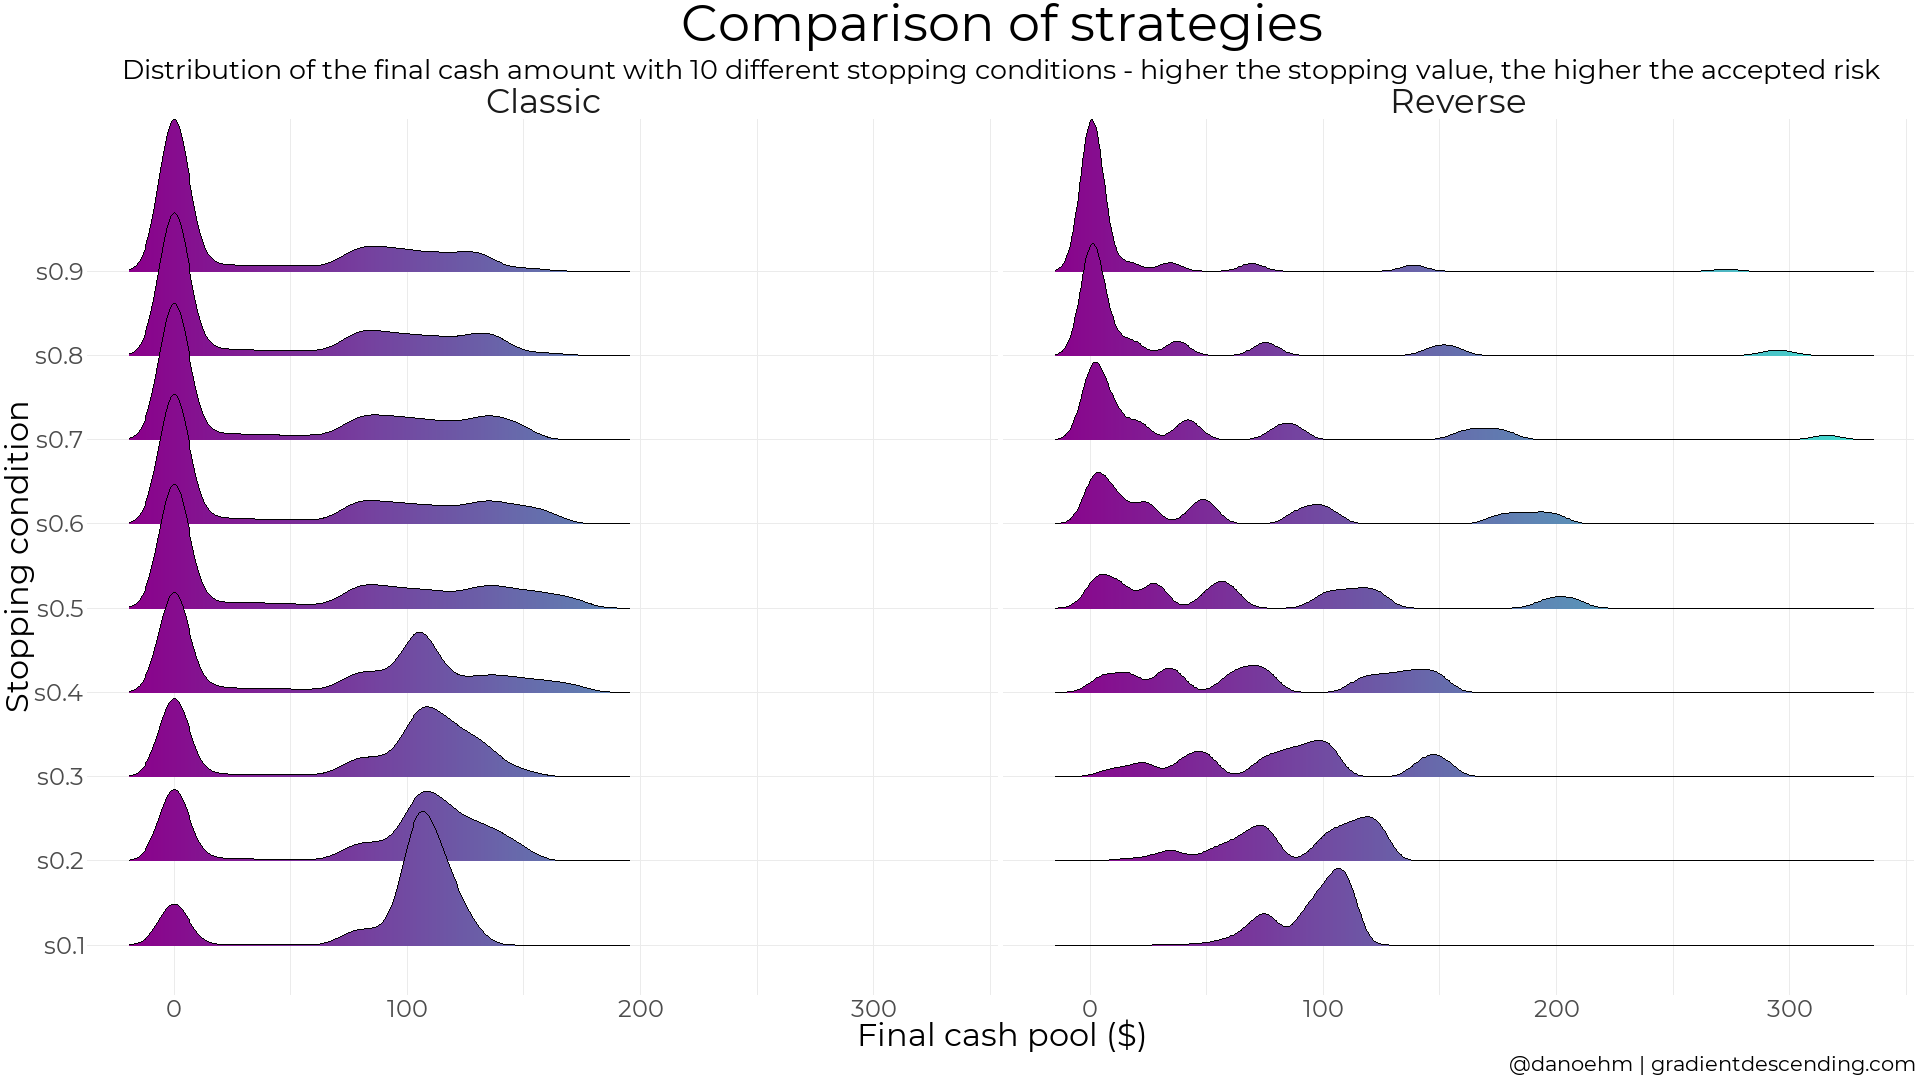 Martingale strategies don't work, but we knew that - Simulation